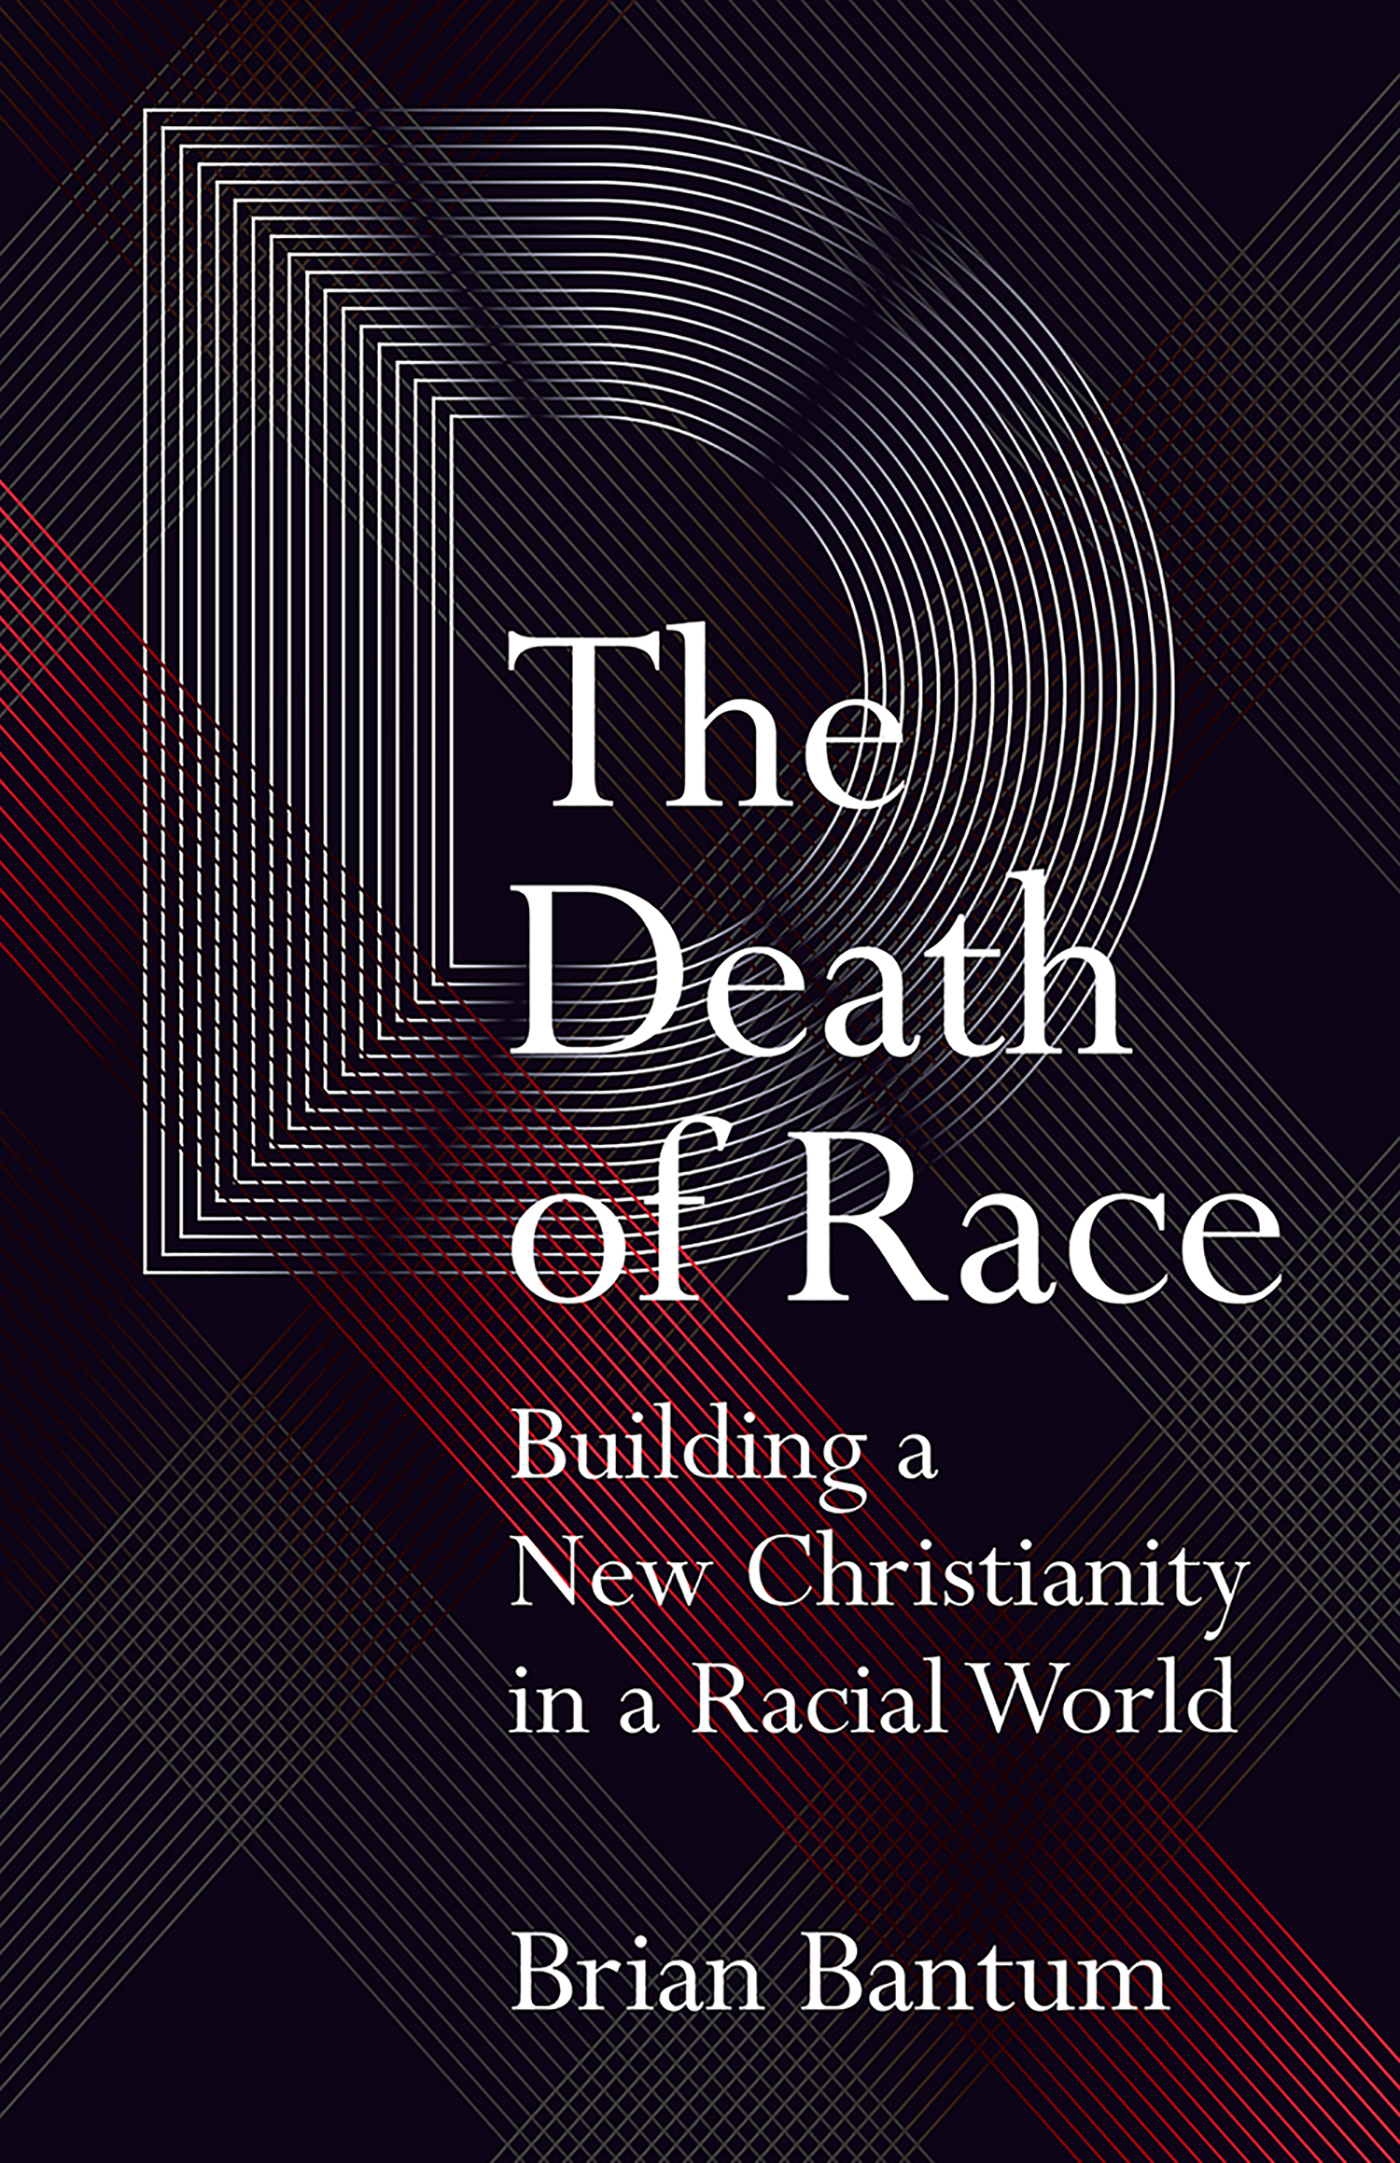 an introduction to the issue of discrimination because of race Racial discrimination in major league  that racial discrimination does not exist in mlb and that race is not a significant  players because the faster entry .